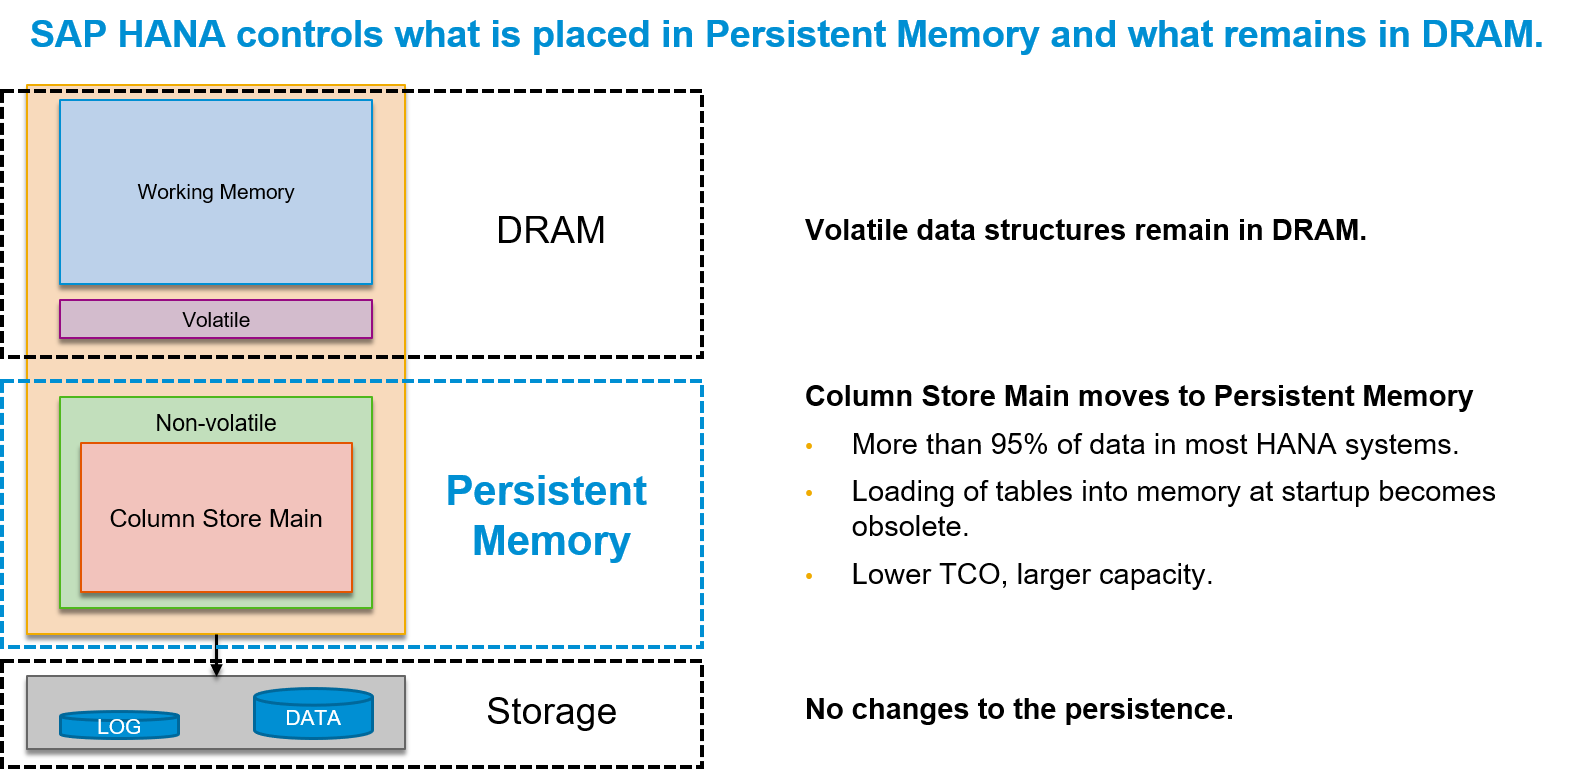 SAP HANA & Persistent Memory | SAP Blogs